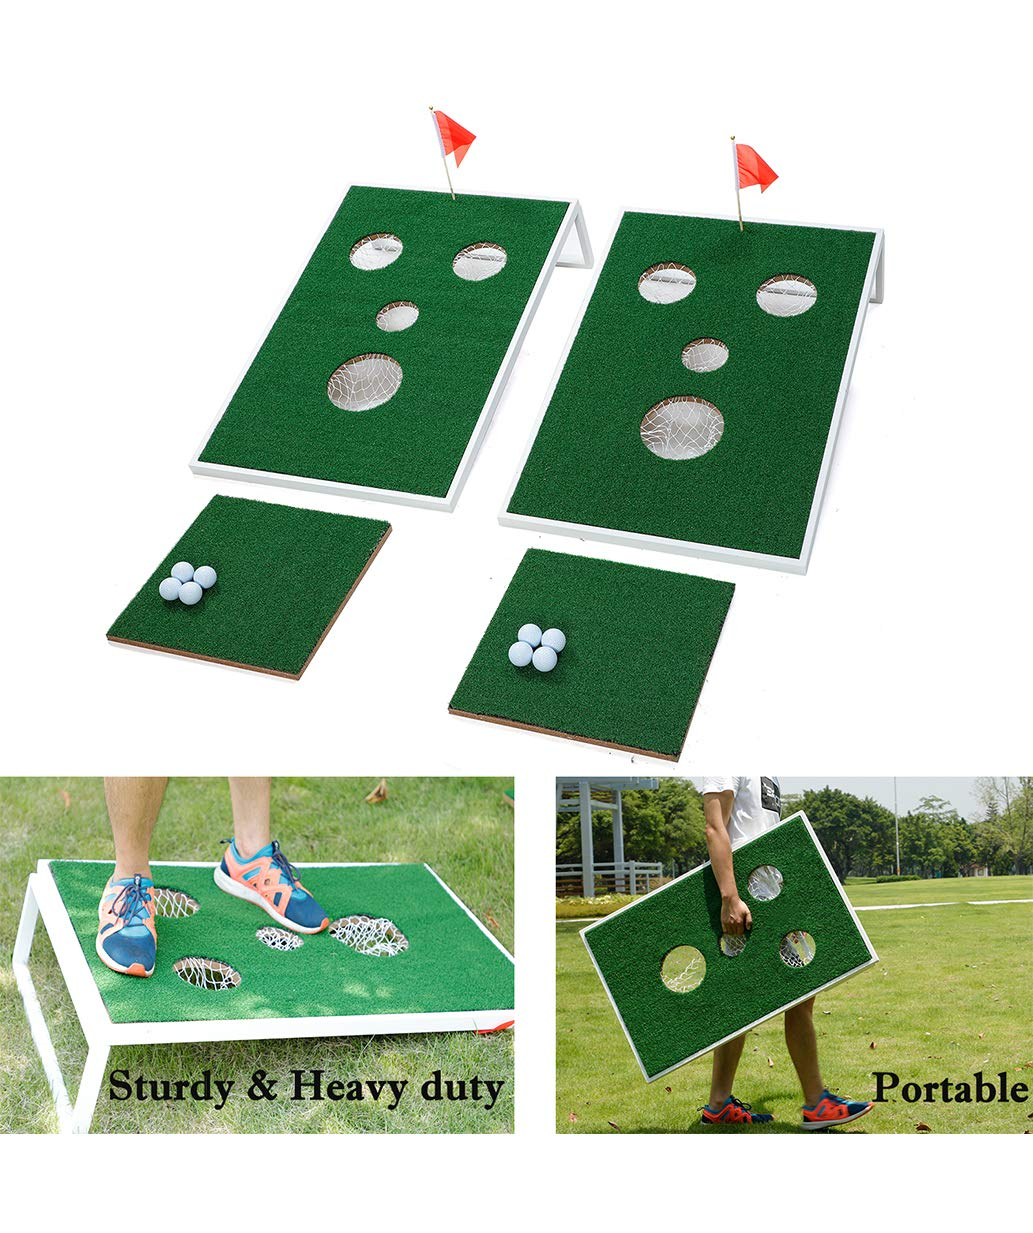 SPRAWL Chipping Golf Cornhole Game Set - Two Boards,Two Chipping Mats,Eight Golf Balls - Portable for Backyard, Beach, Office